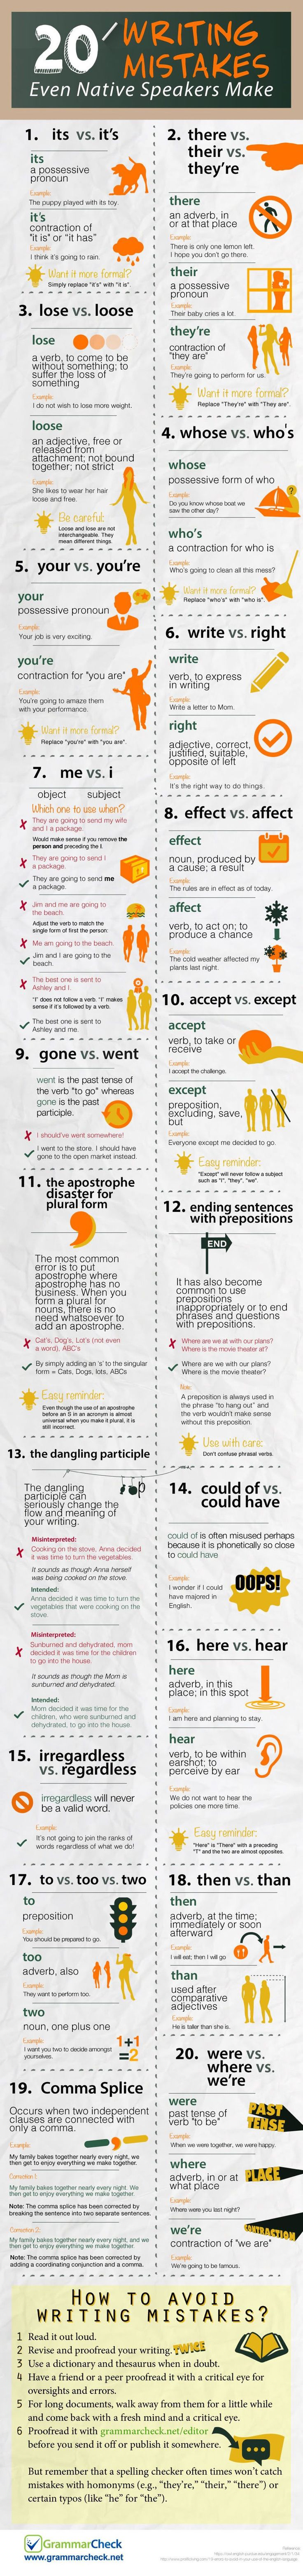 Online grammar editing tool Grammar Check has released the new infographic that…